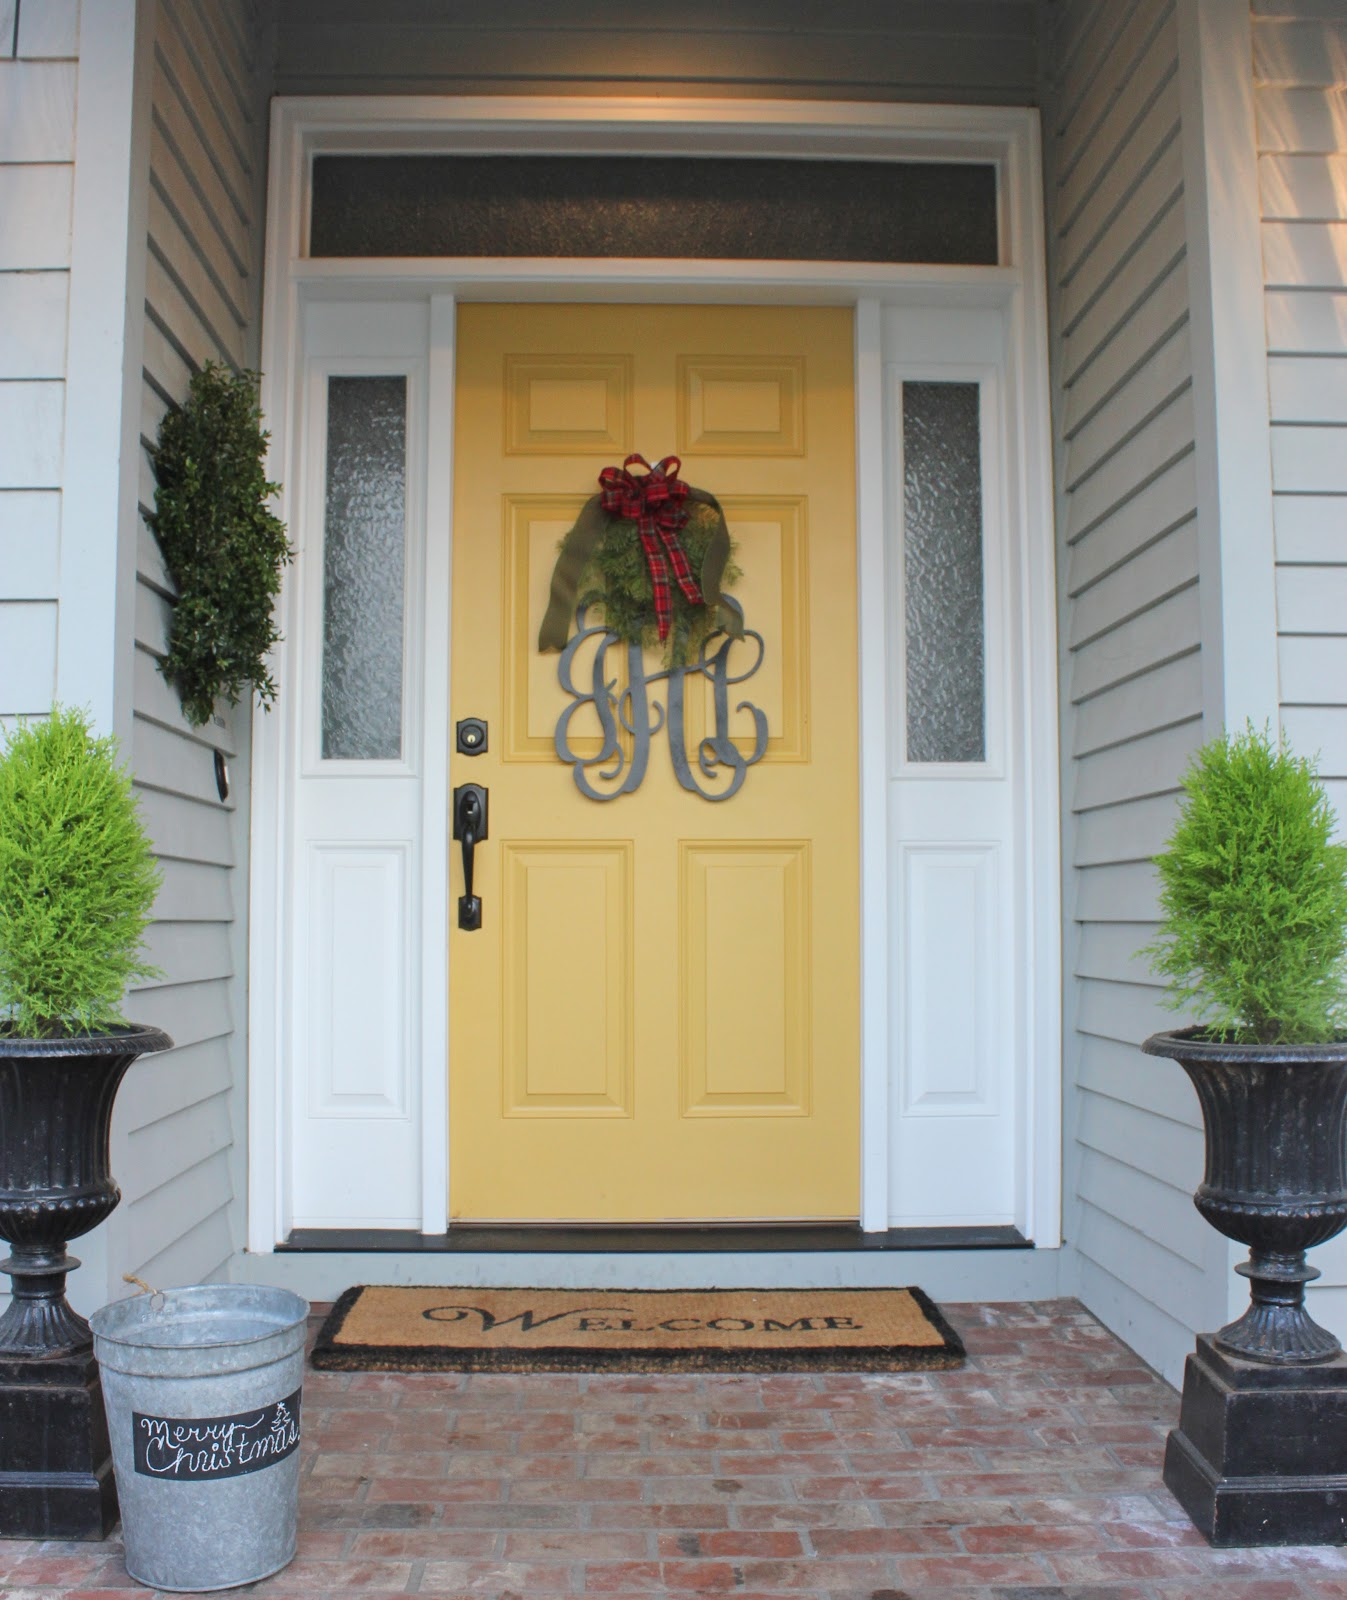 Our christmas home forever cottage - Gray house yellow door ...